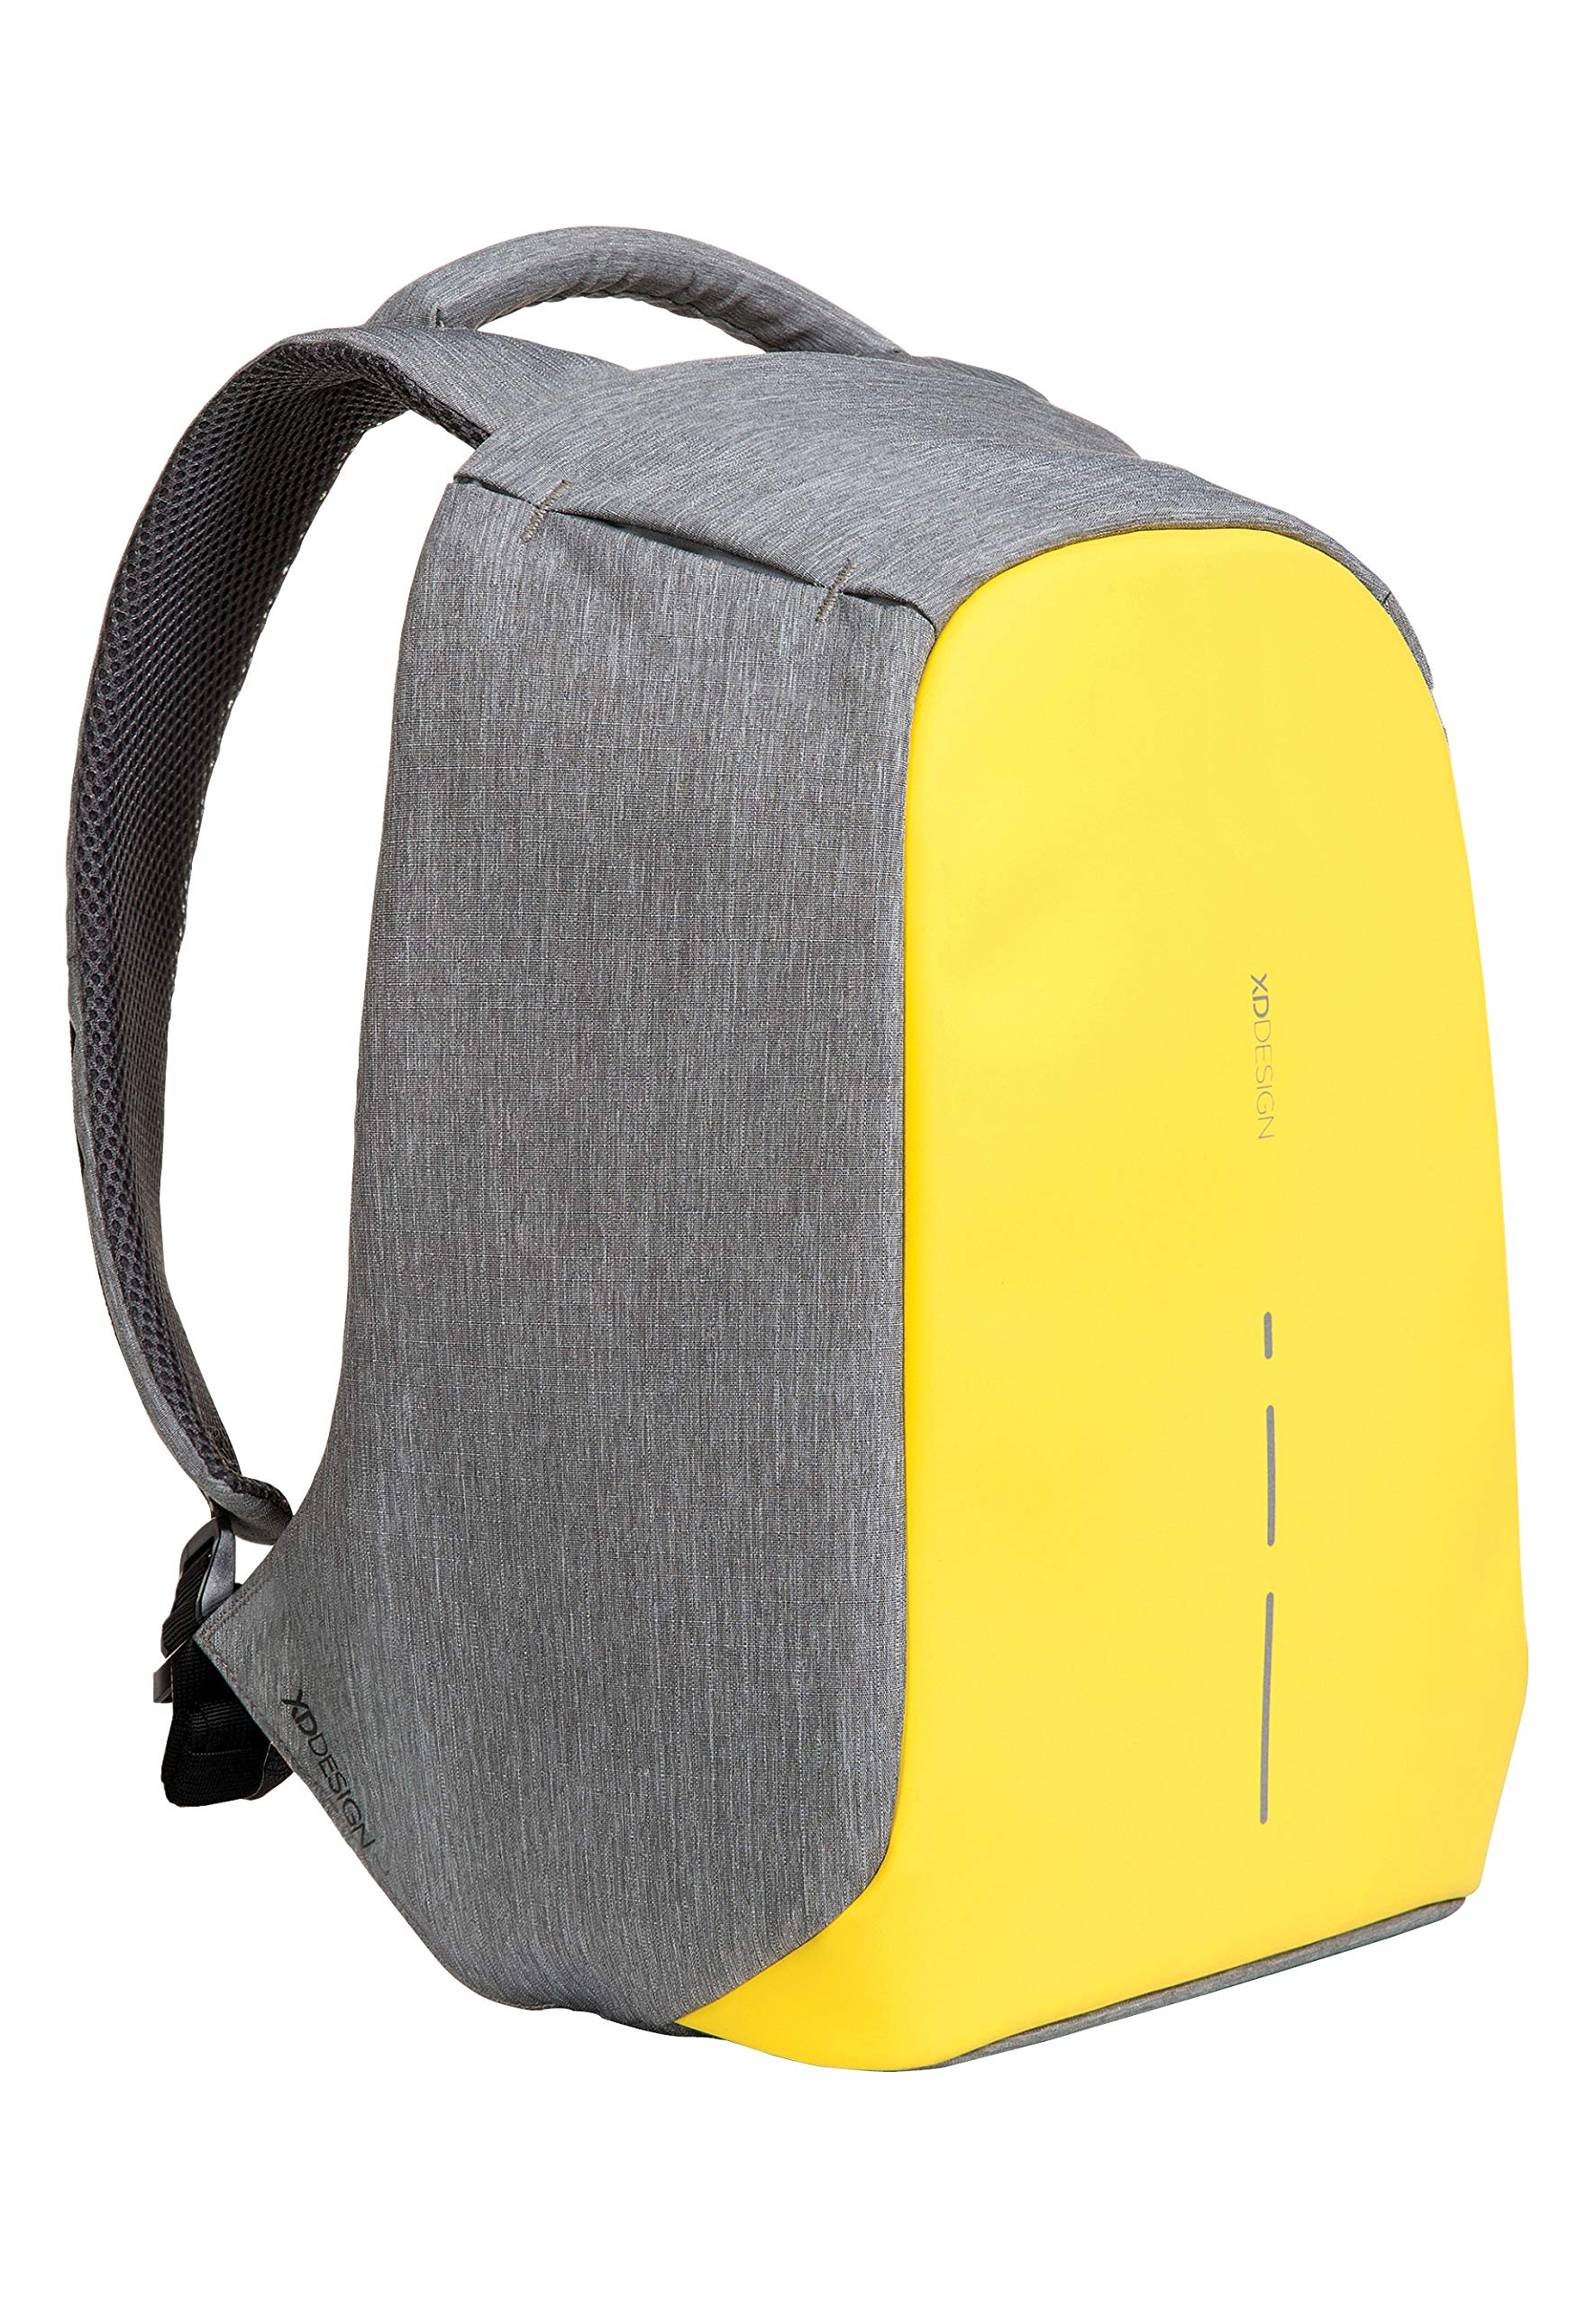 XD Design Bobby Compact Anti-Theft Laptop USB Backpack Yellow (Unisex Bag) by XDDesign